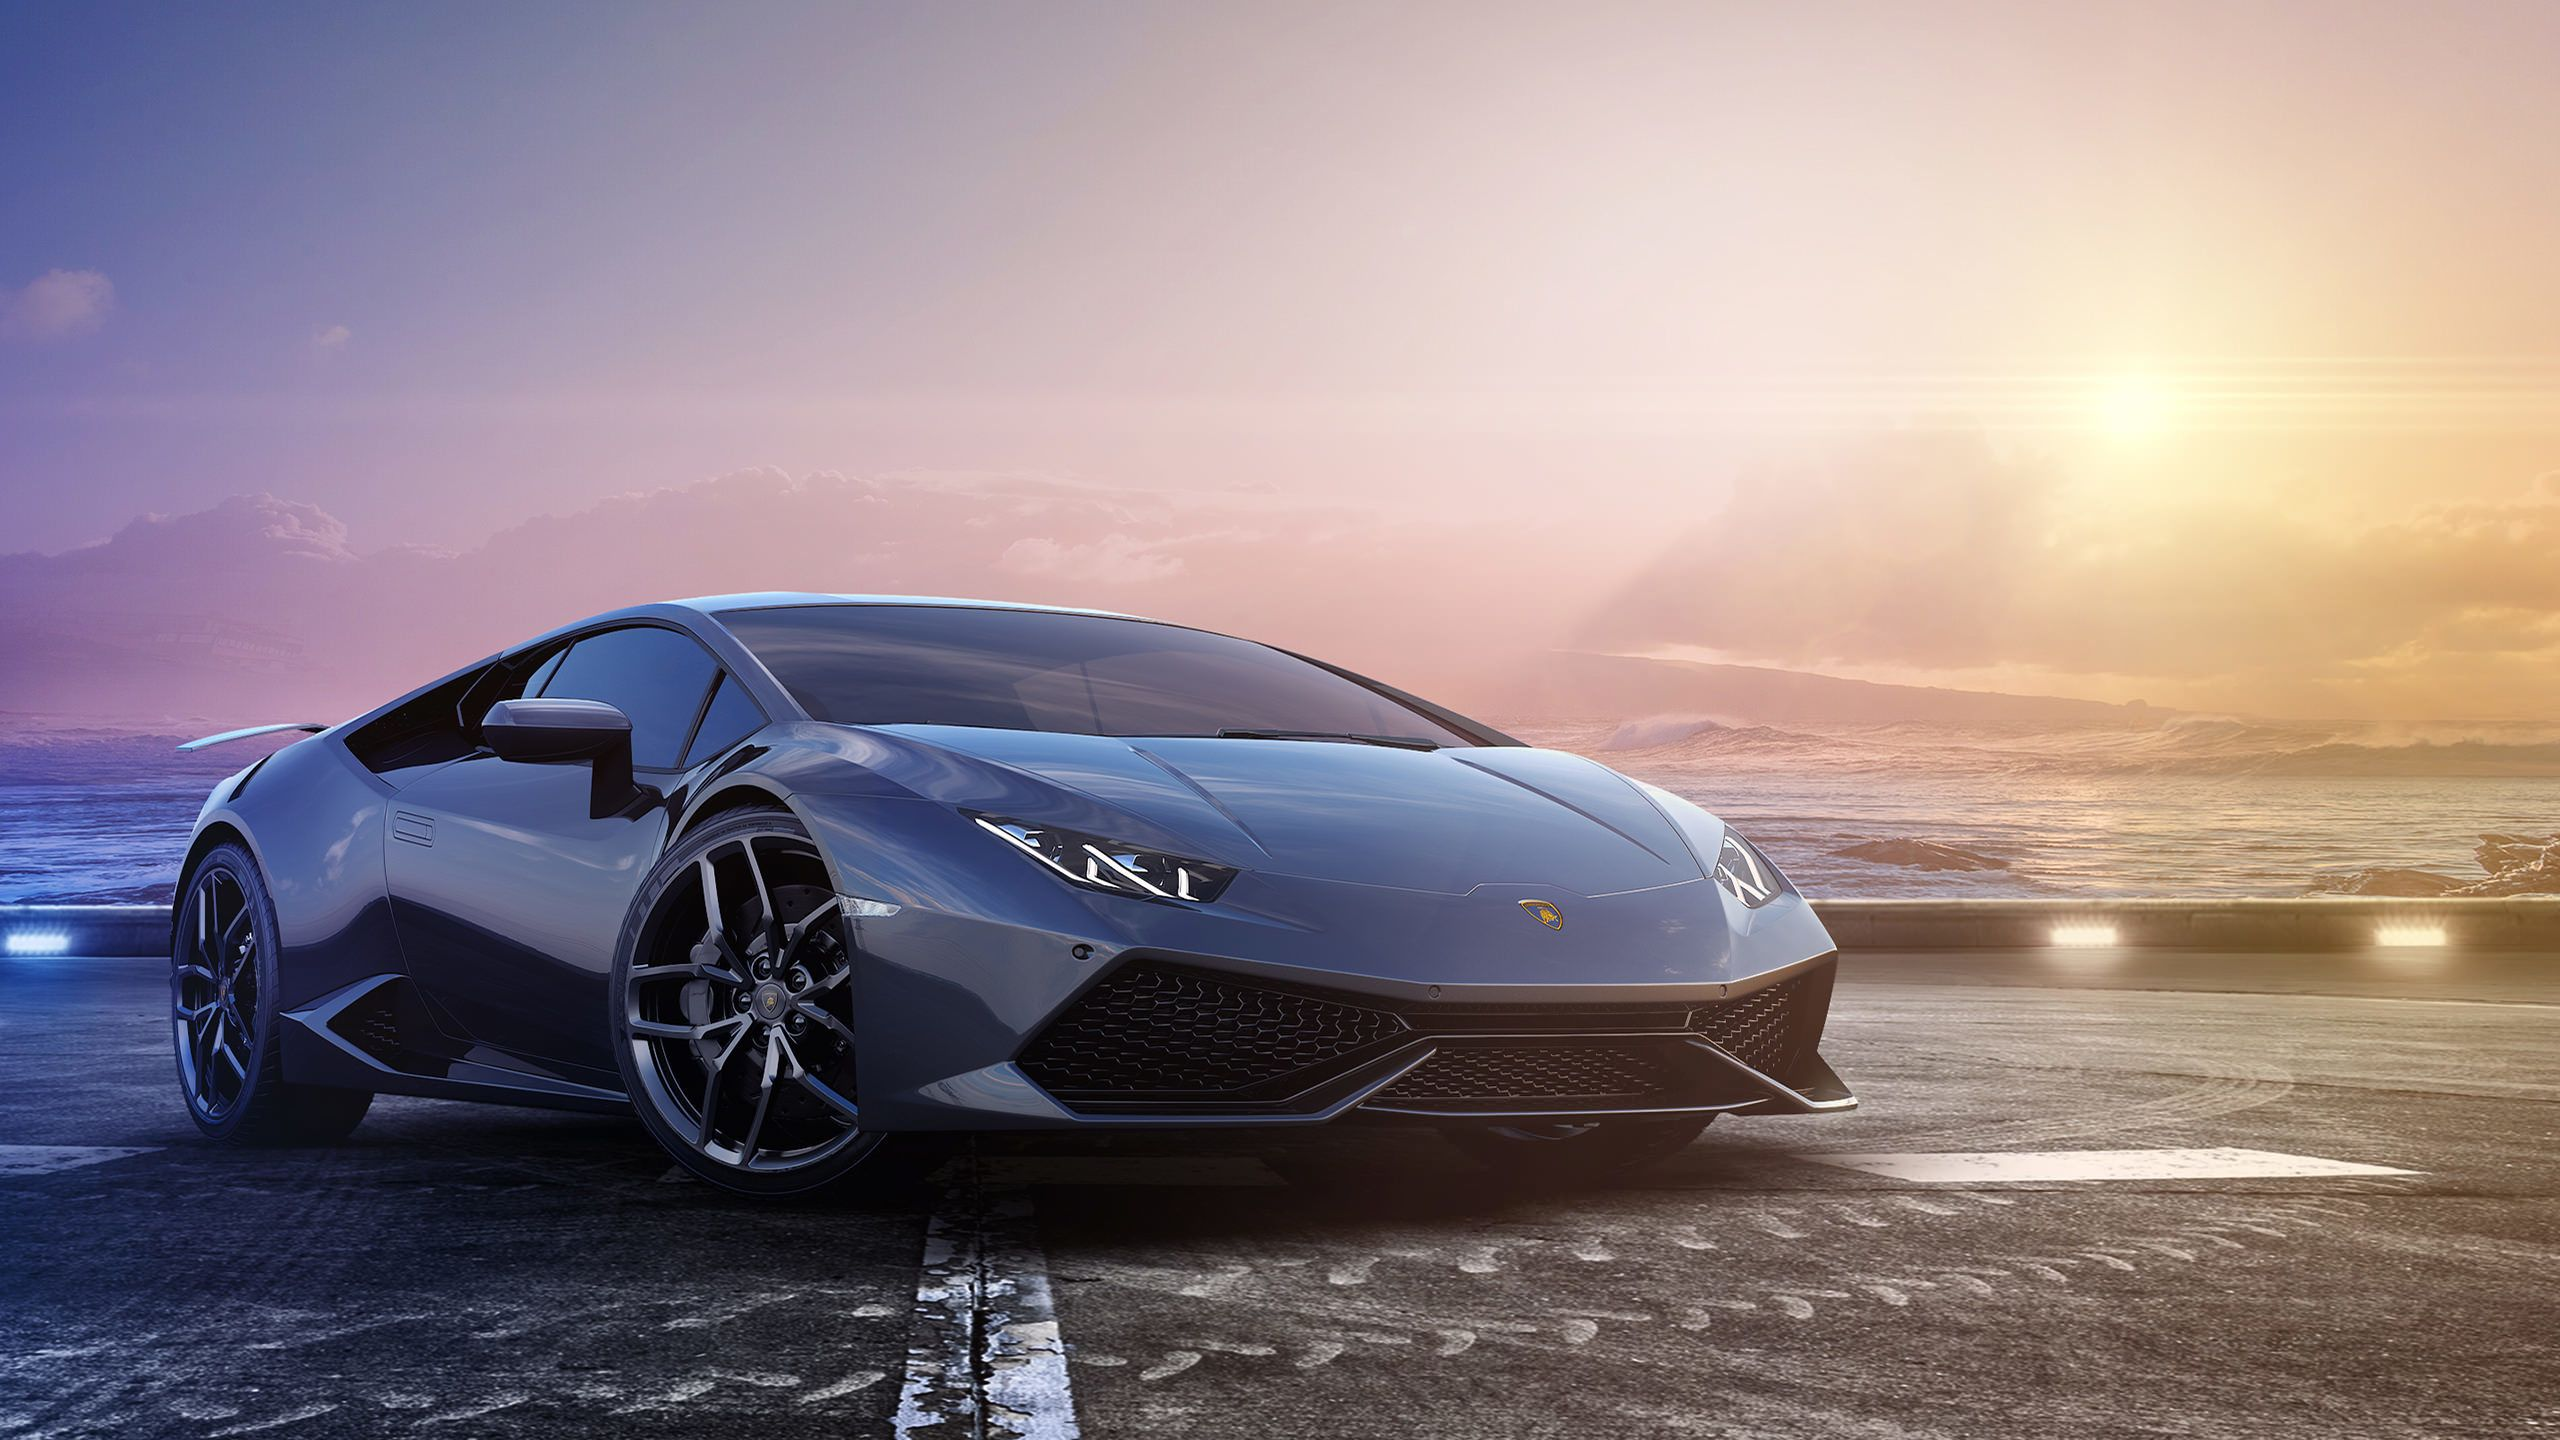 Lamborghini Wallpaper For Iphone 6Vu WHIPS